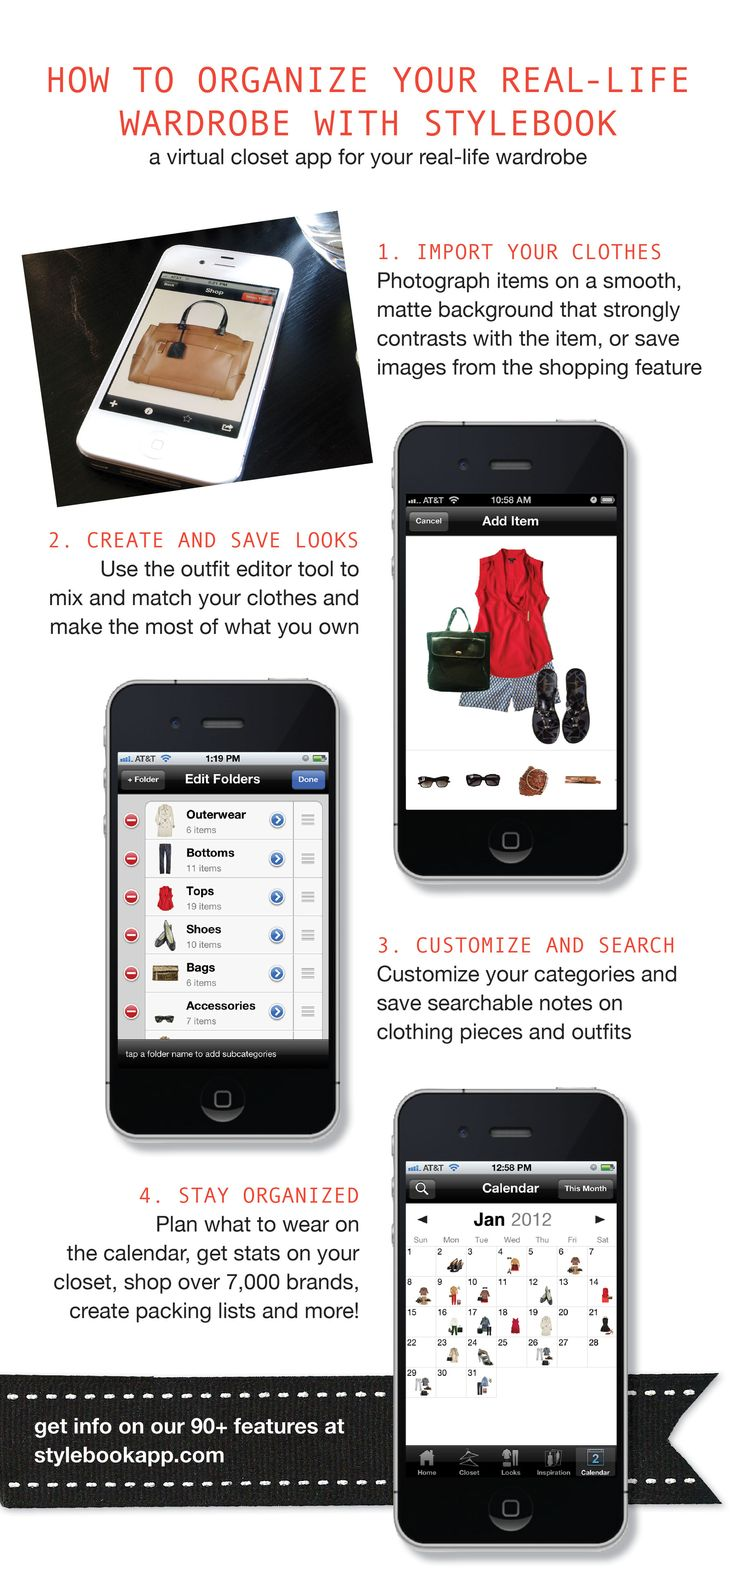 I want to do this! @Cassandra Tripp  How to organize your real wardrobe on your iPhone - Stylebook - #closet #iPhone #app